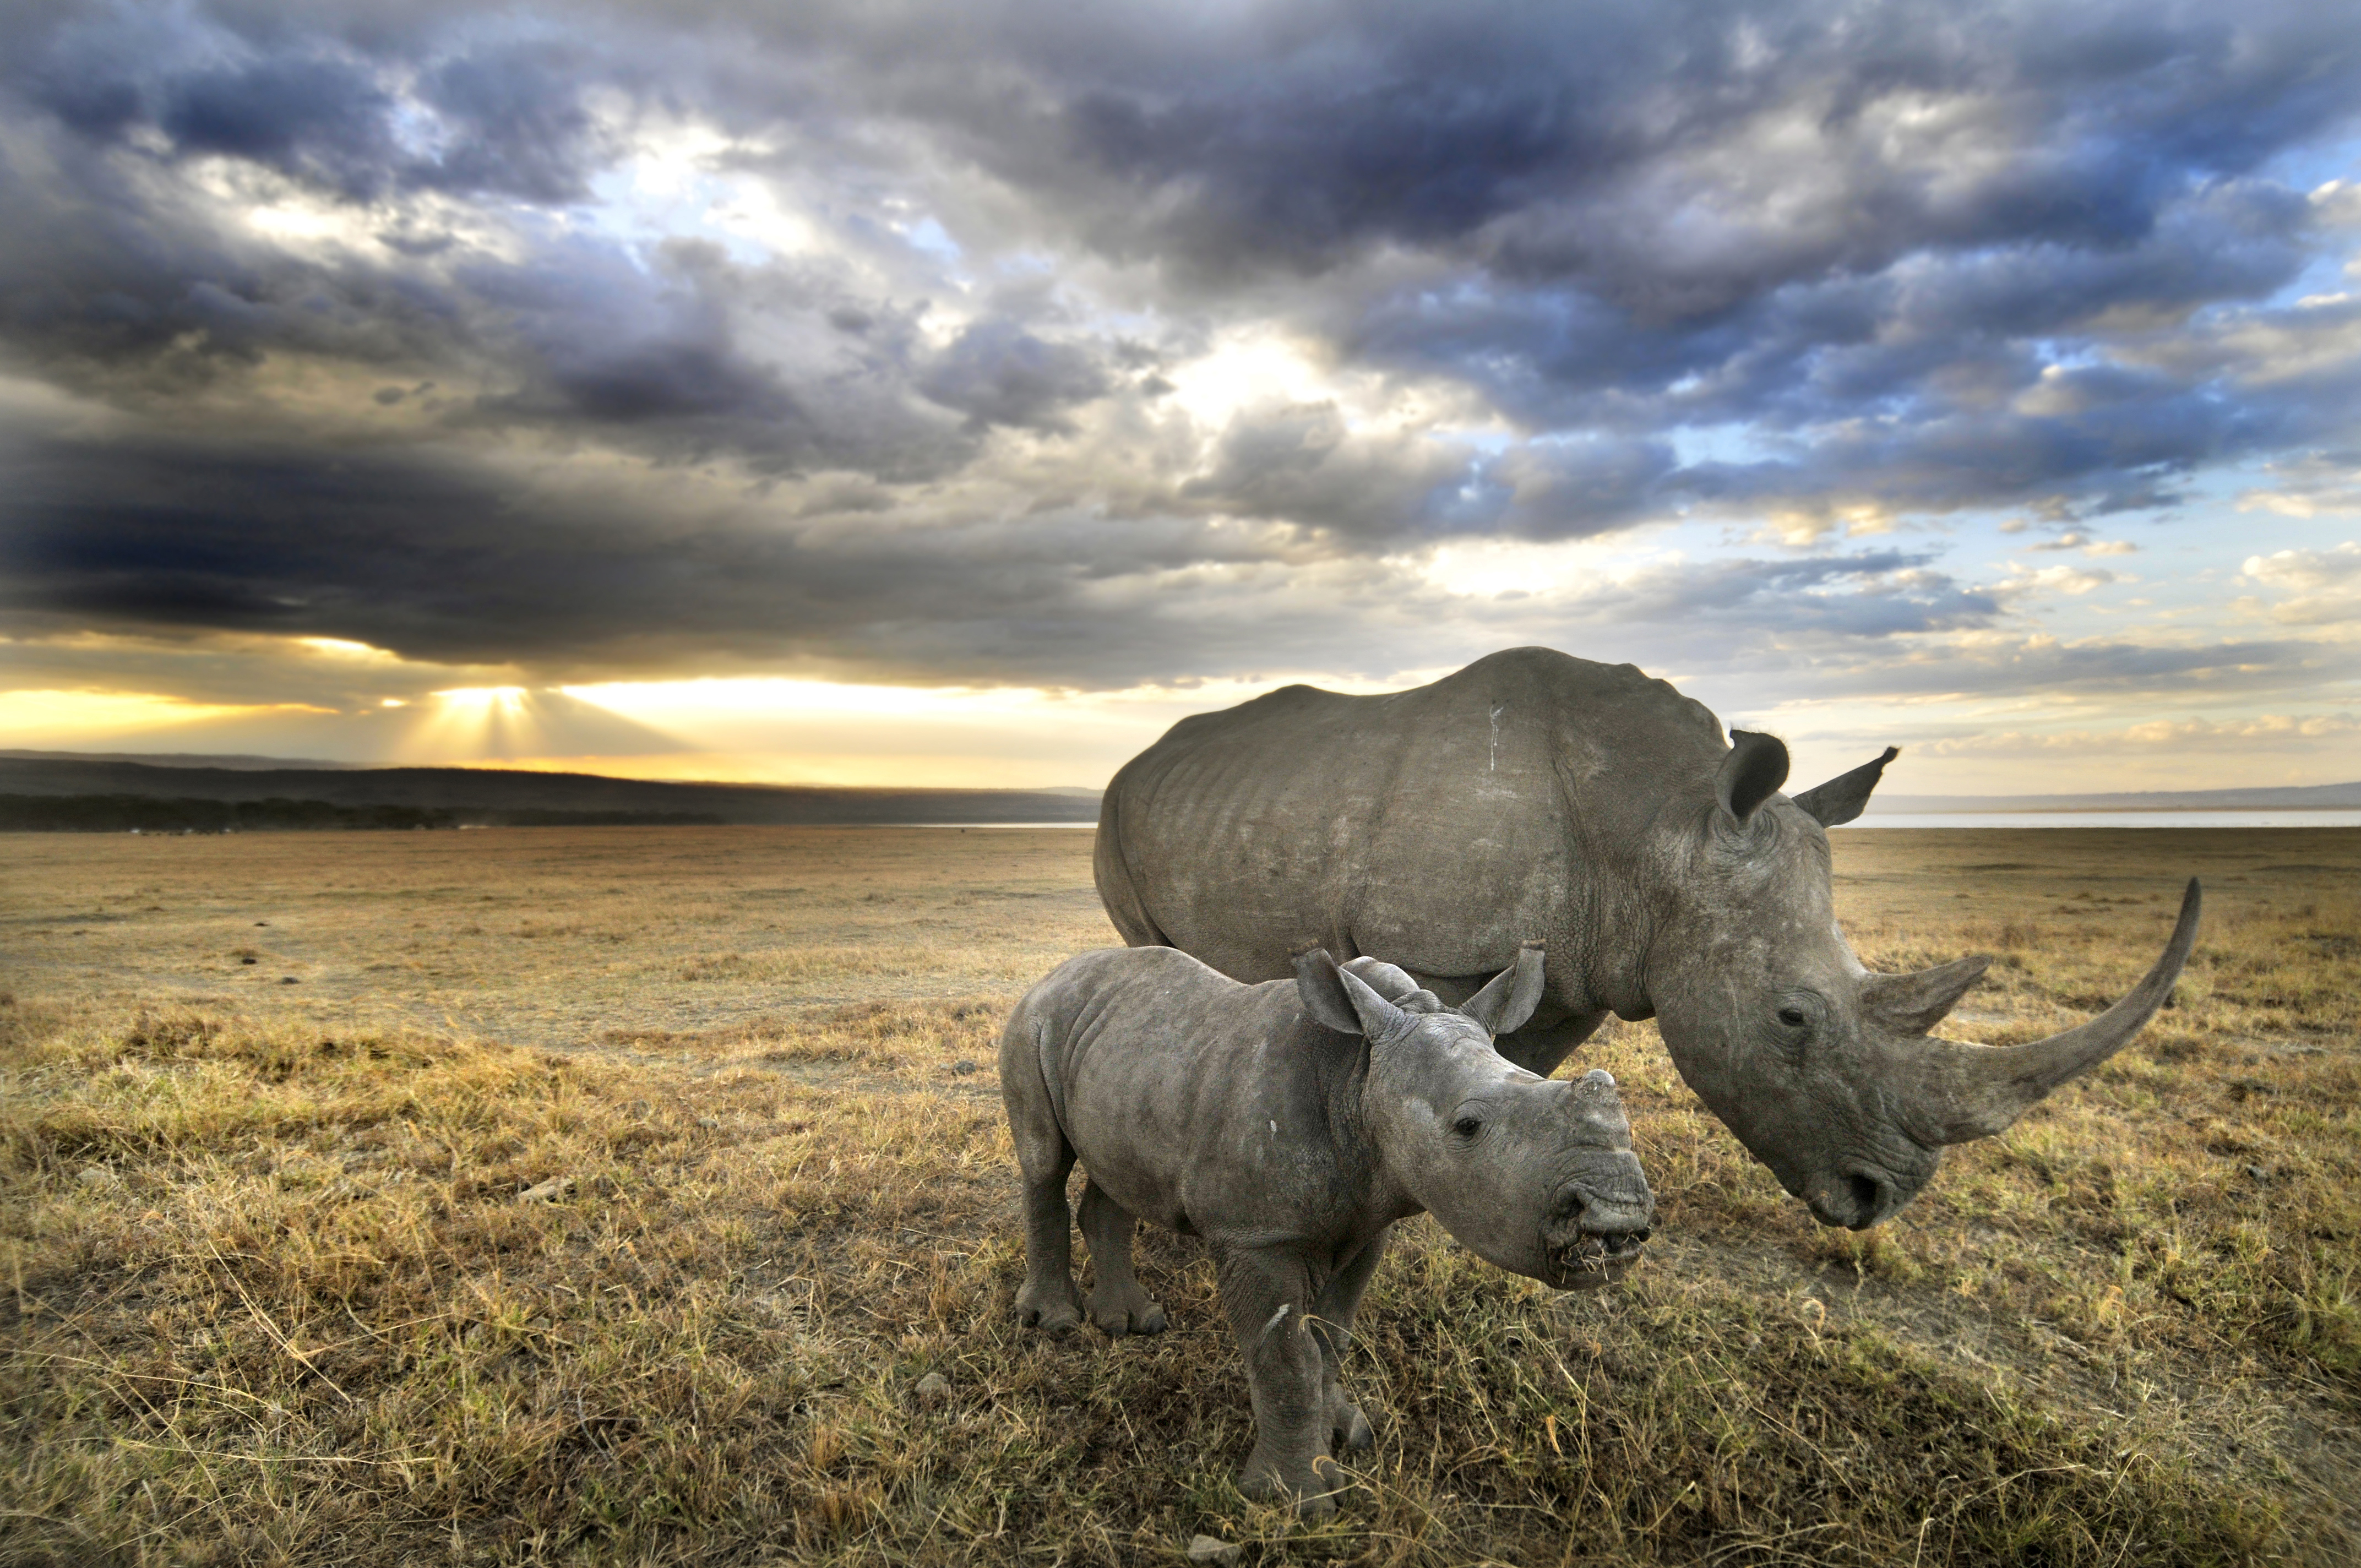 A white rhino and her baby head towards home after a long day of grazing in Nakuru.